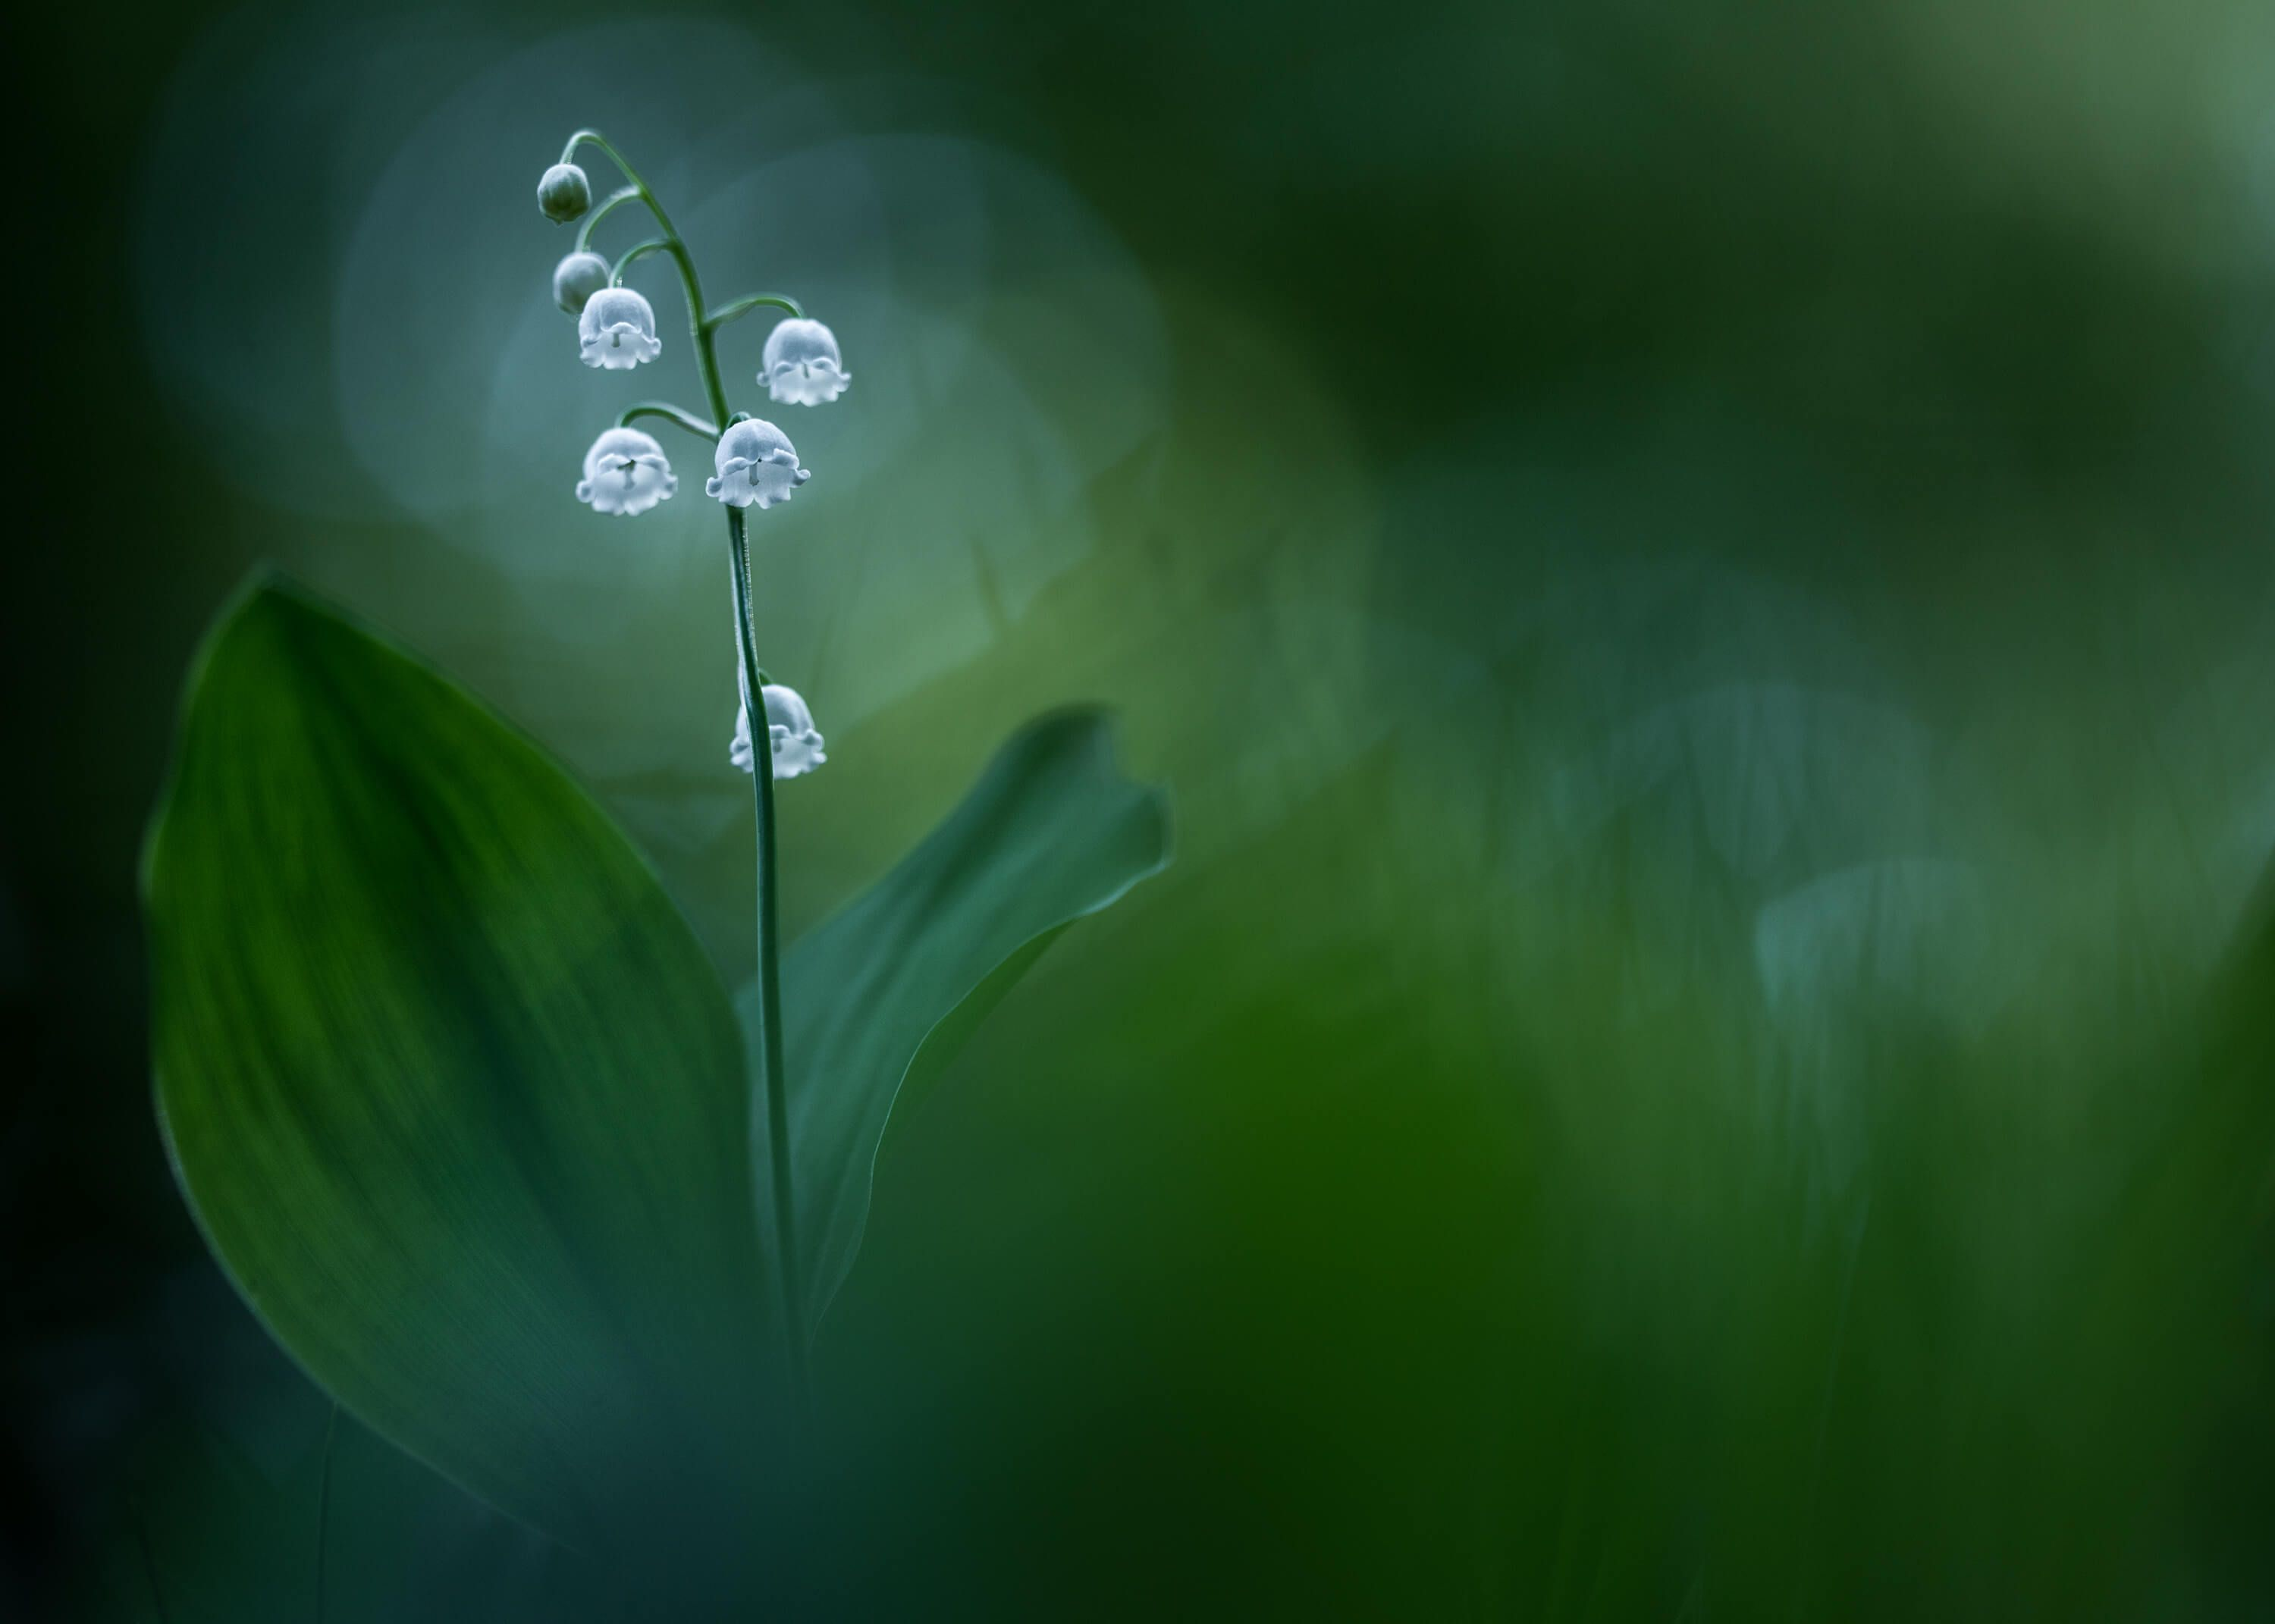 Macro Lilly of the Valley